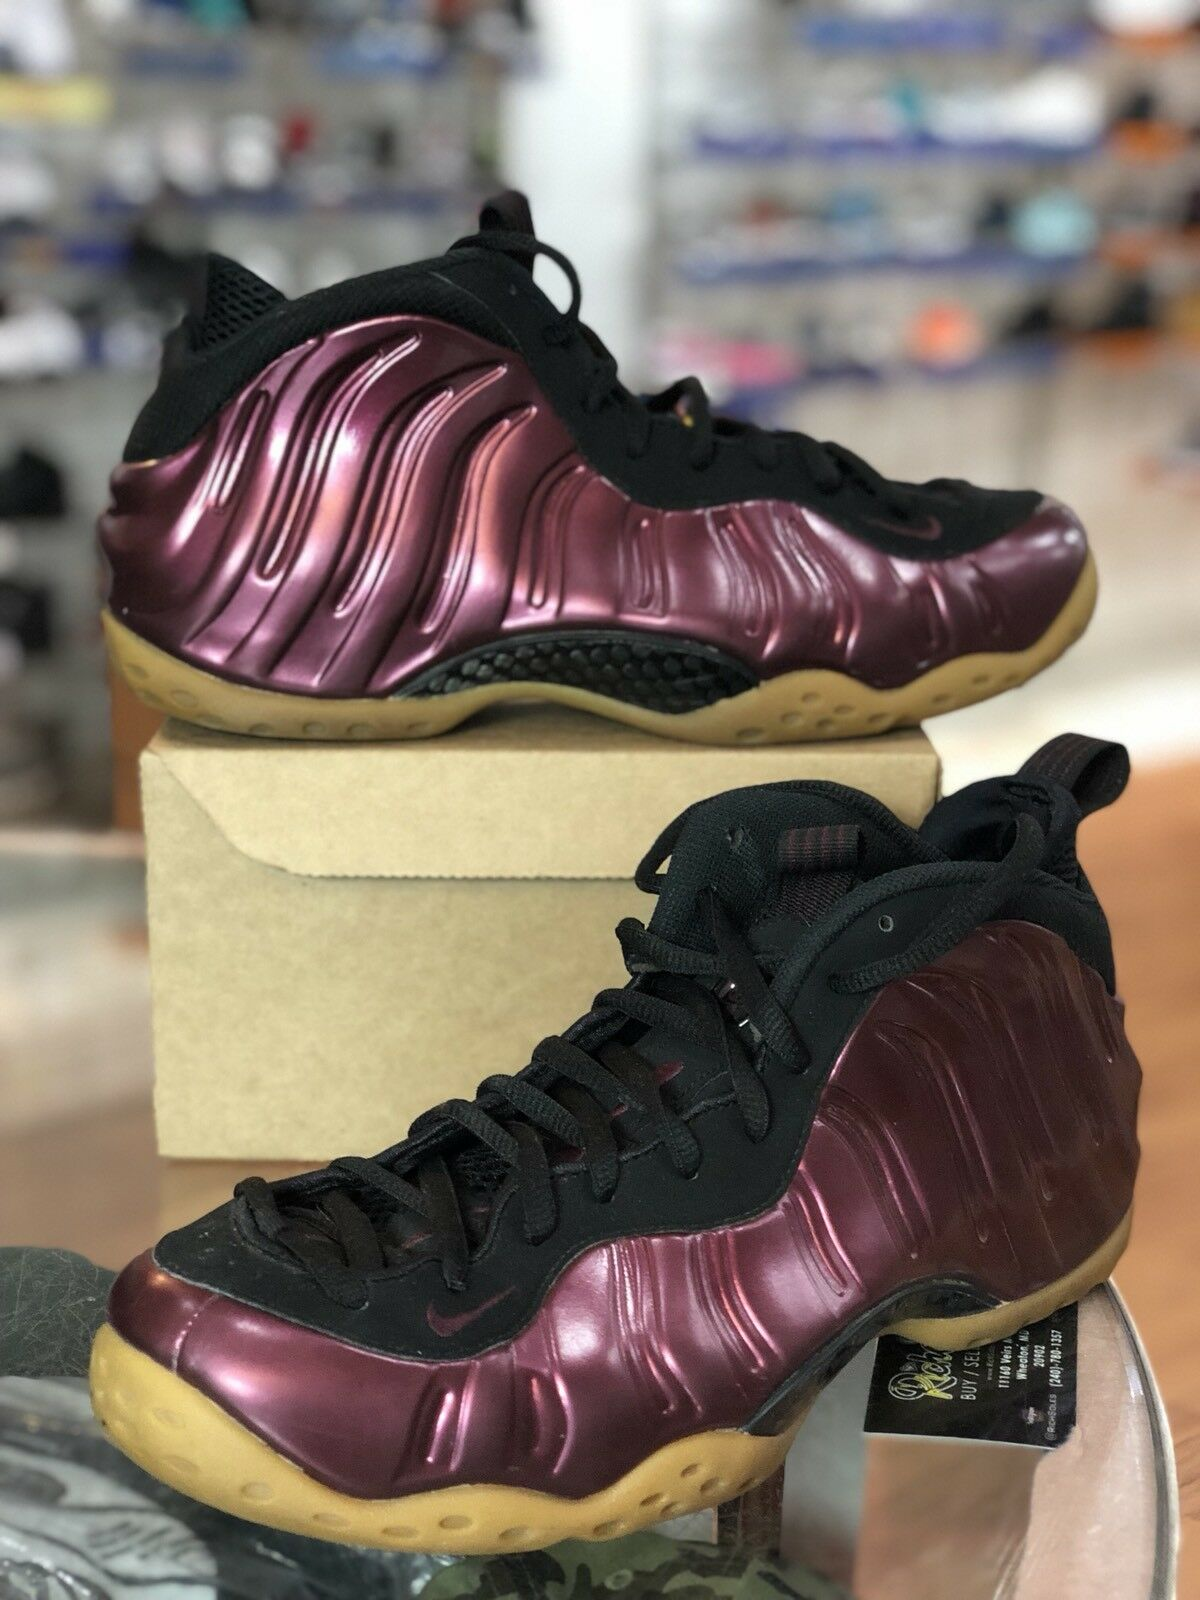 Nike Air Foamposite One Night Maroon / Black 314996 601 Sz 10.5 The most popular shoes for men and women